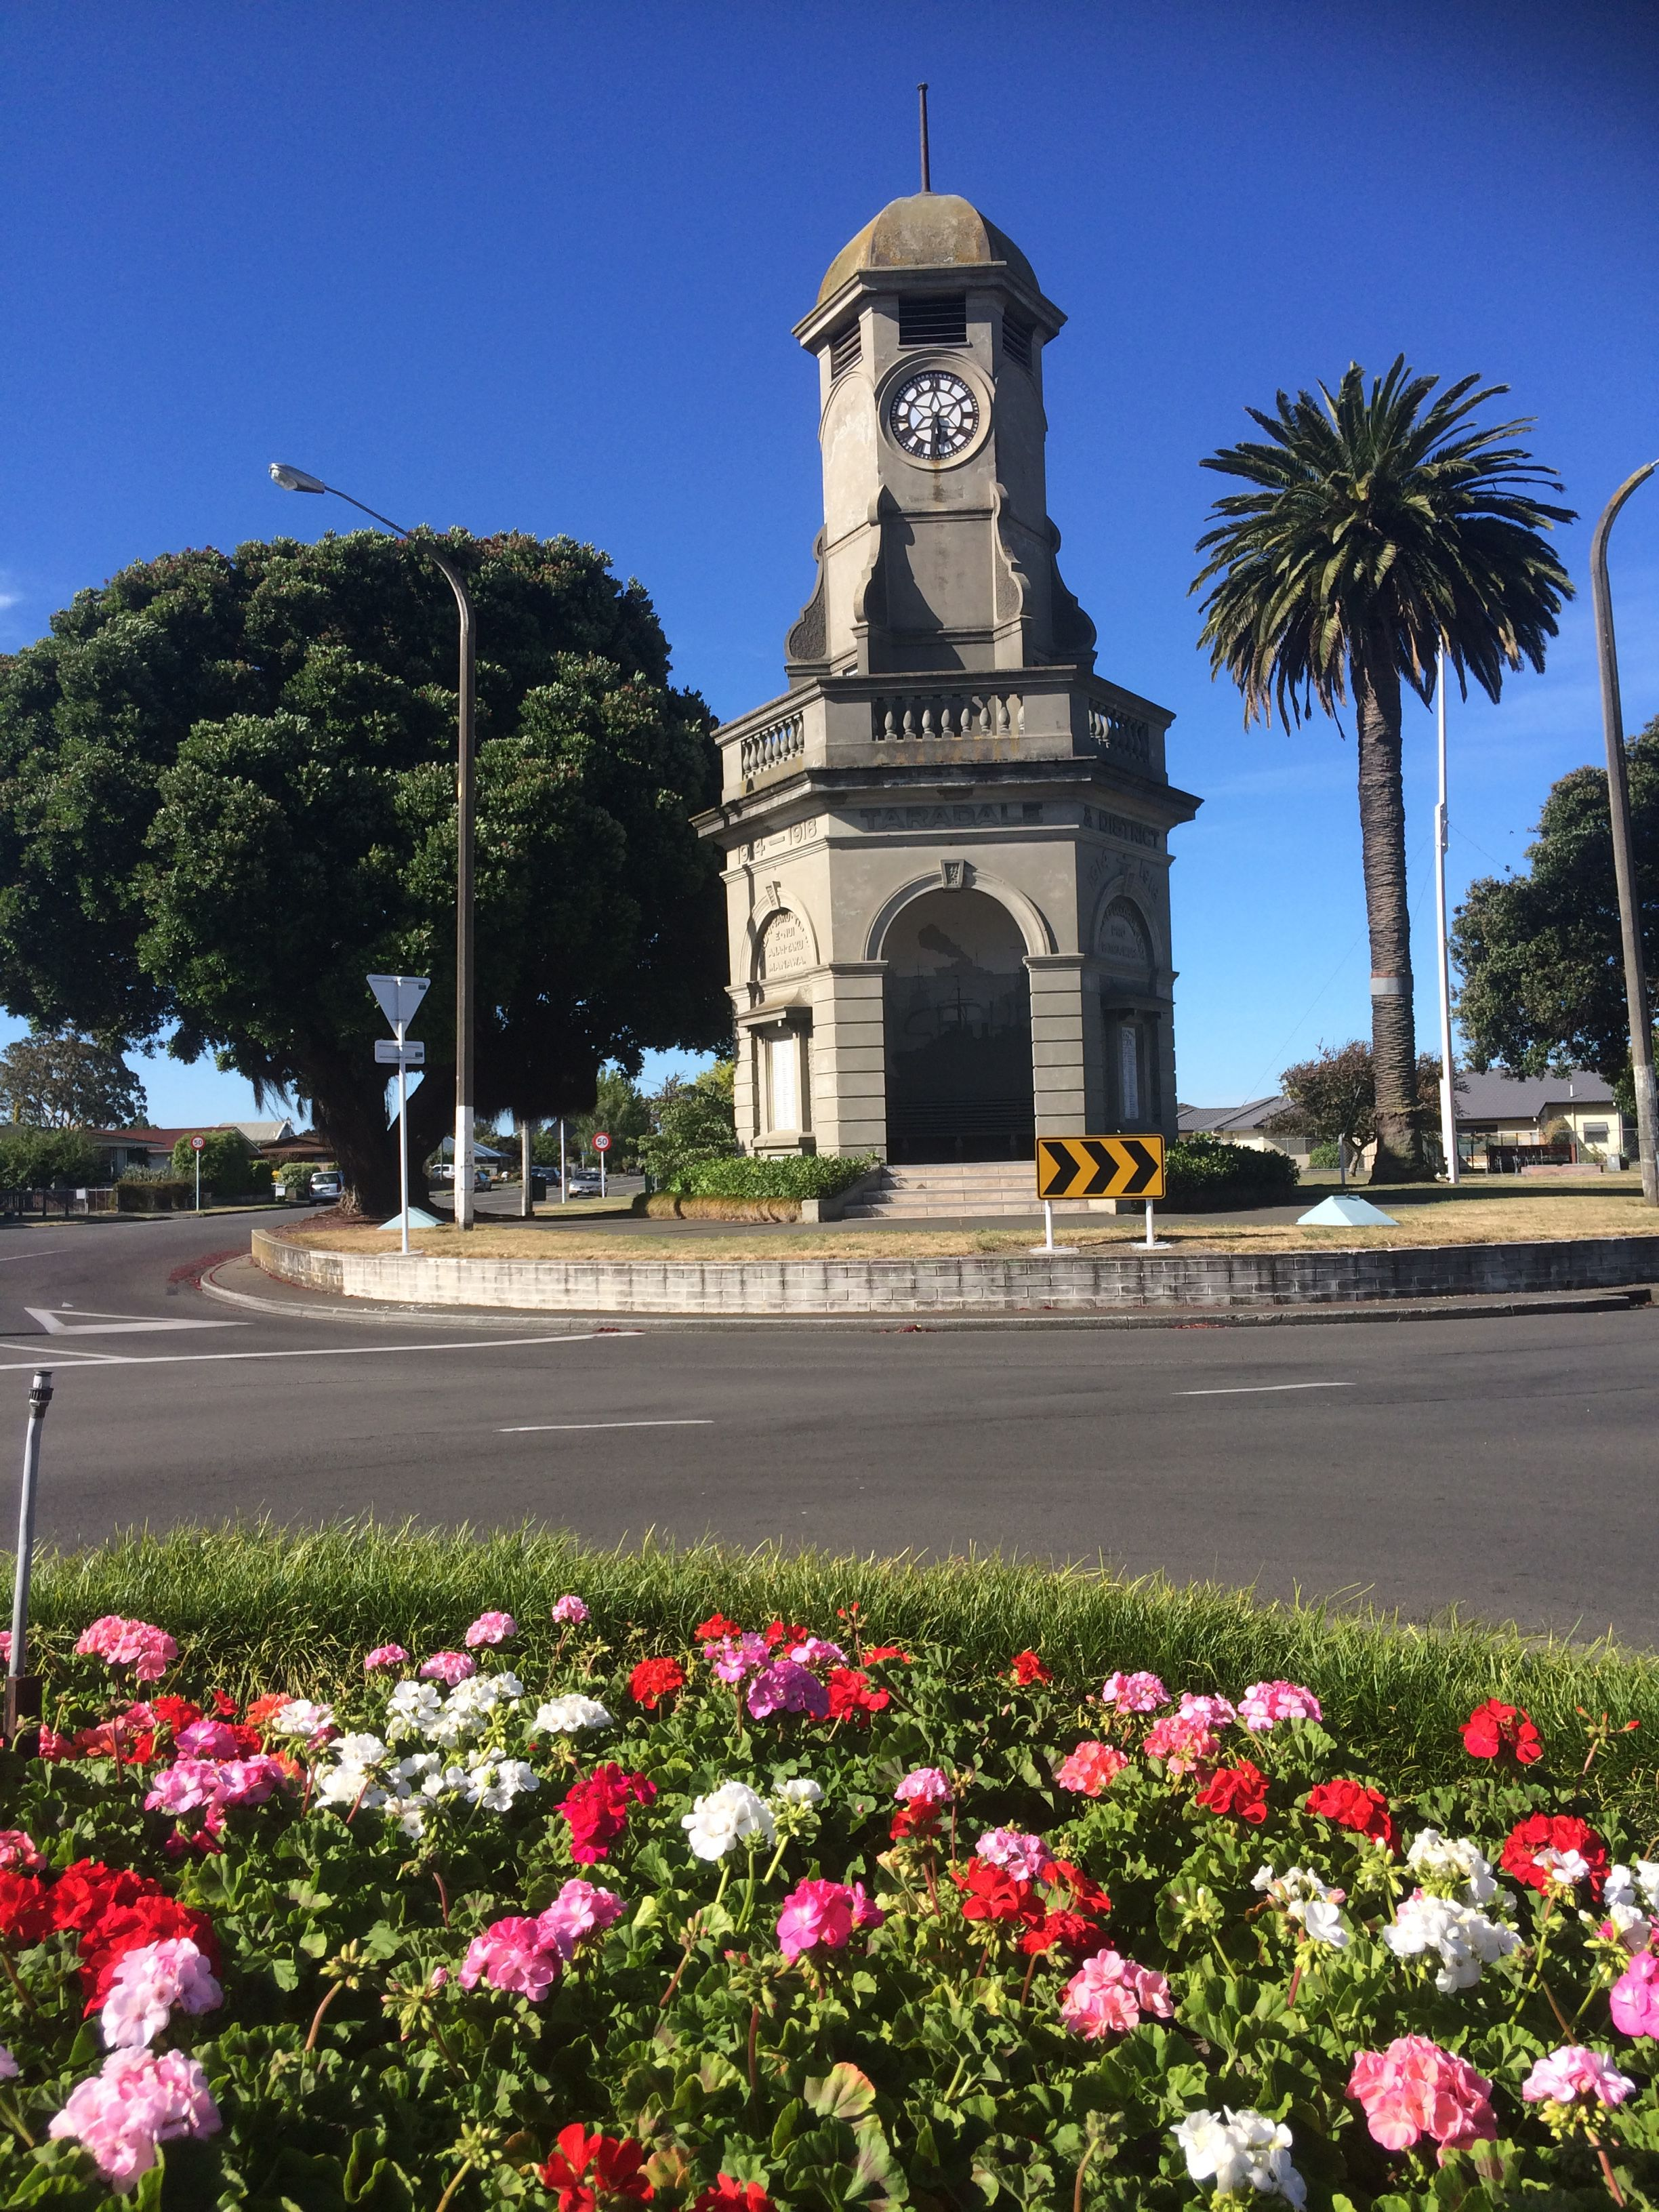 File:Taradale Clocktower, Napier, New Zealand.jpg - Wikipedia